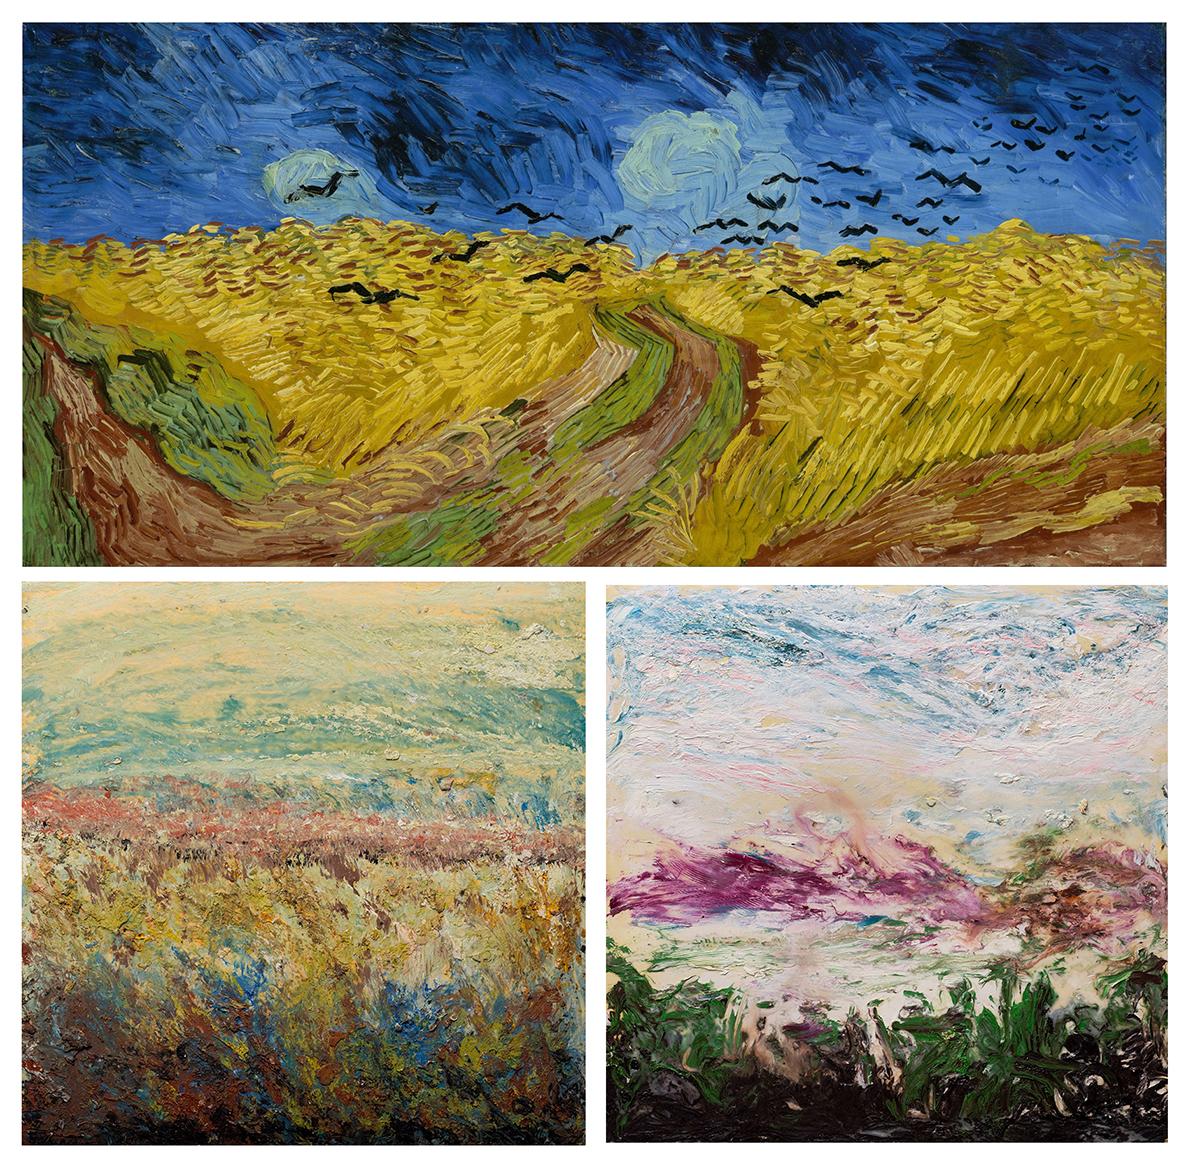 (top) Vincent van Gogh, Wheatfield with Crows (1890), (bottom left) Sam Bartman, Untitled (2008), (bottom right) Sam Bartman, First Attempt (1998),